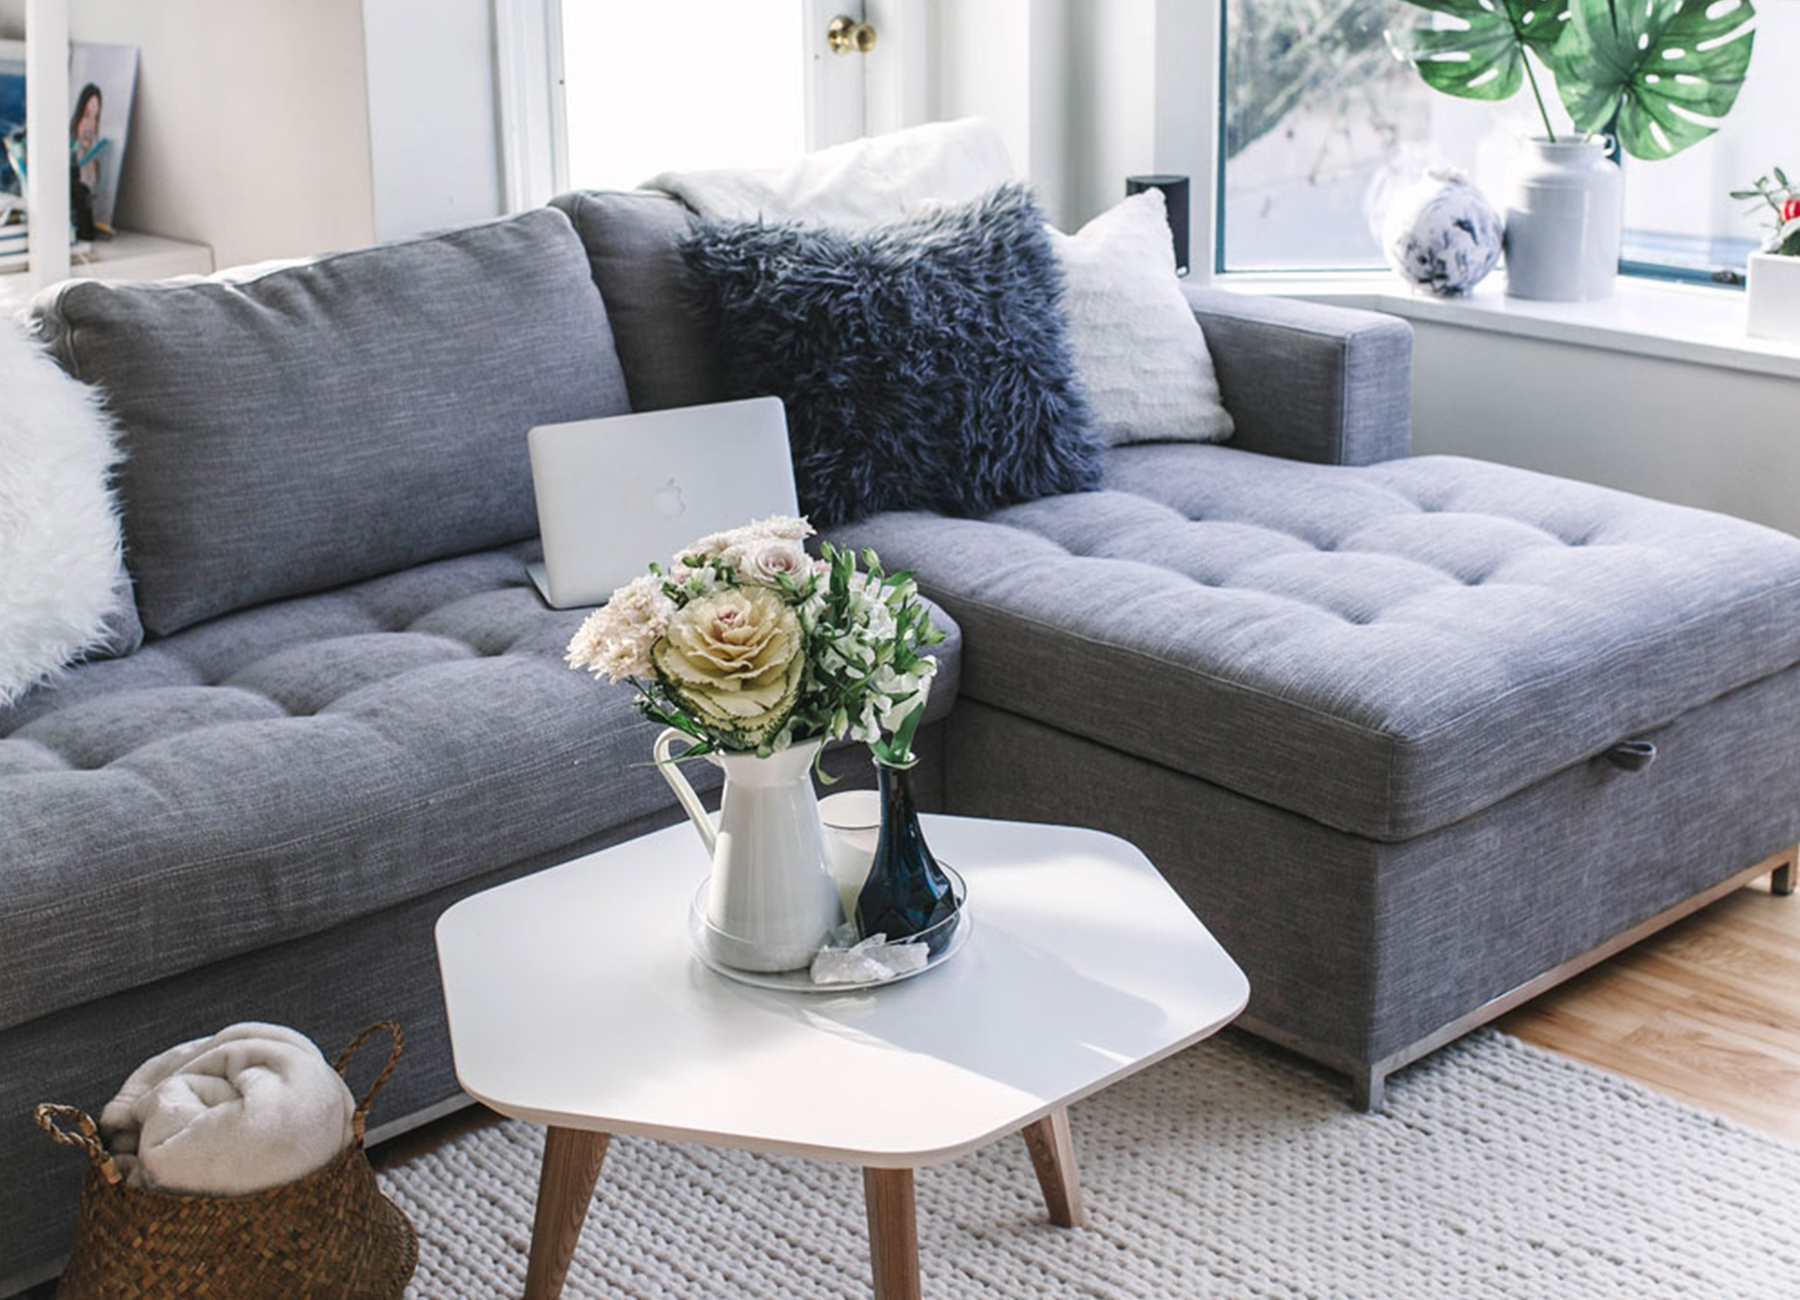 Focus On Furniture Sofa Bed Sofa Bed For Small Spaces How To Host Your Friends In Your Tiny Home